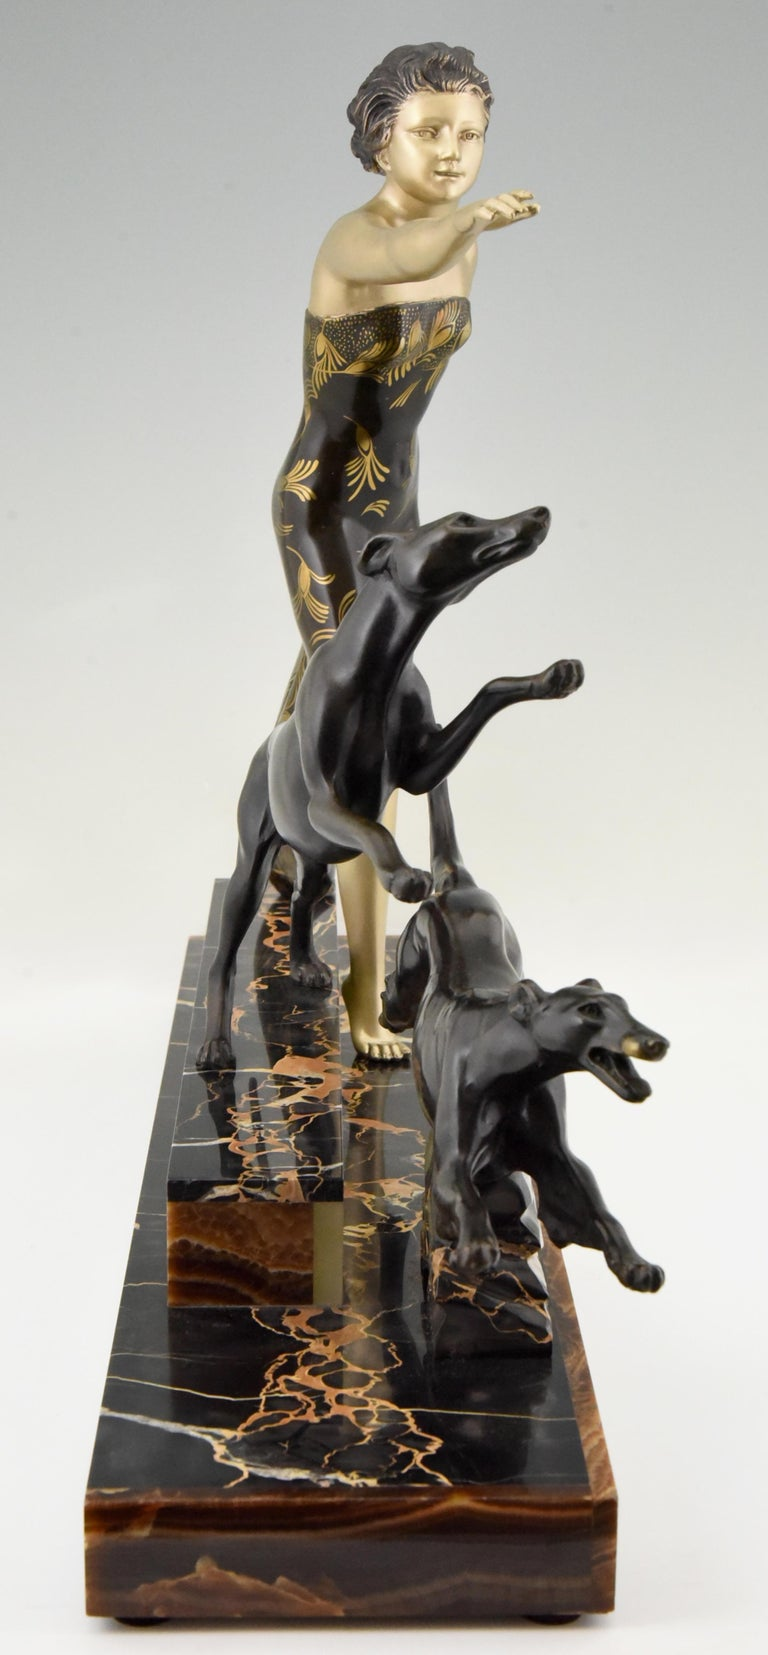 Patinated Art Deco Sculpture Lady with Dogs by Uriano, France, 1930 For Sale